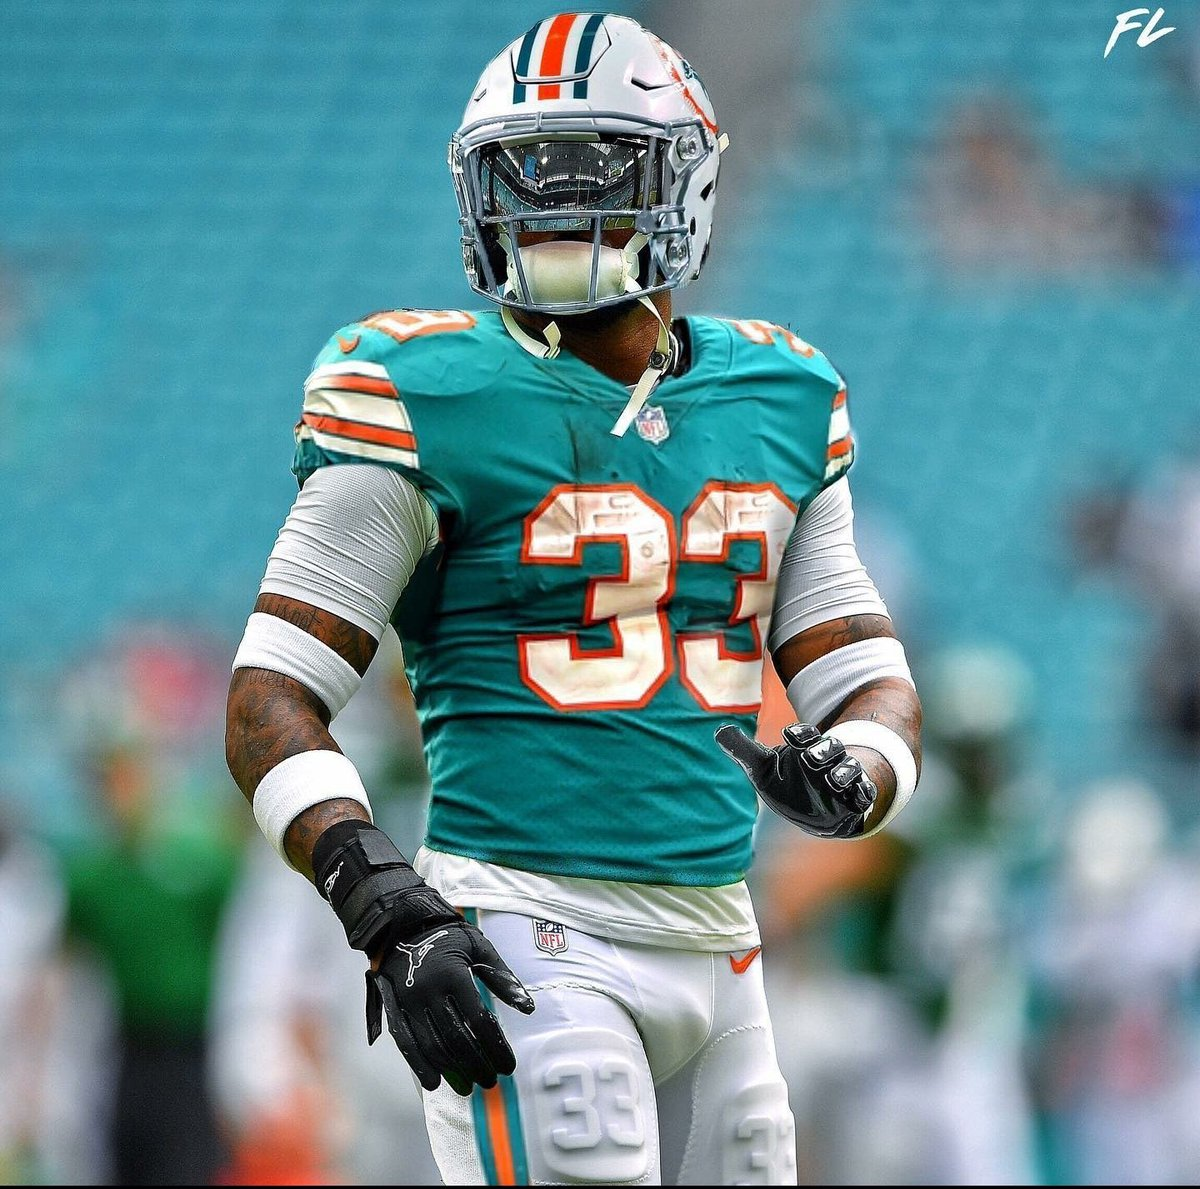 If the Miami Dolphins trade for Jamal Adams, are we a playoff team? #MiamiDolphins #FinsUp <br>http://pic.twitter.com/5QZeFVsllY